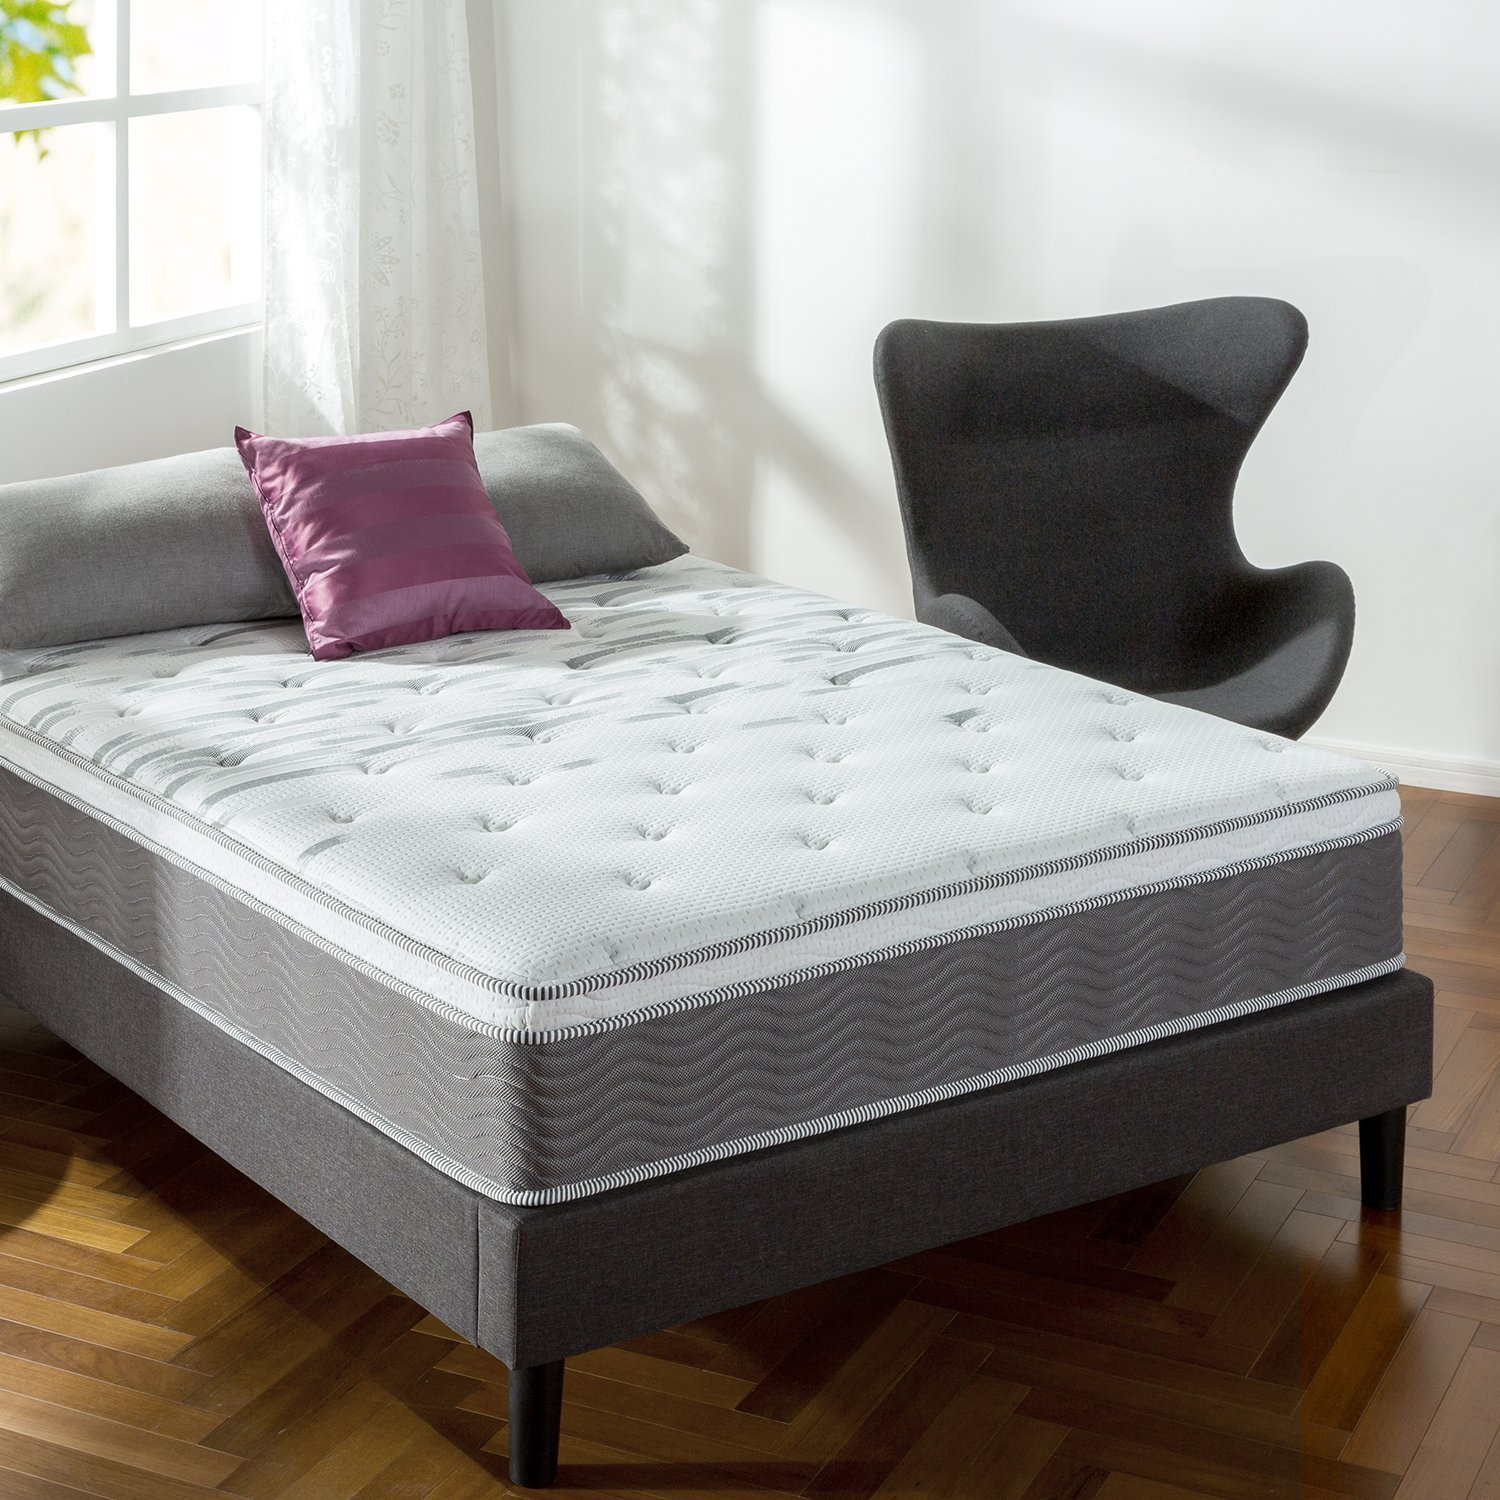 Zinus 12 Inch Performance Plus / Extra Firm Spring Mattress